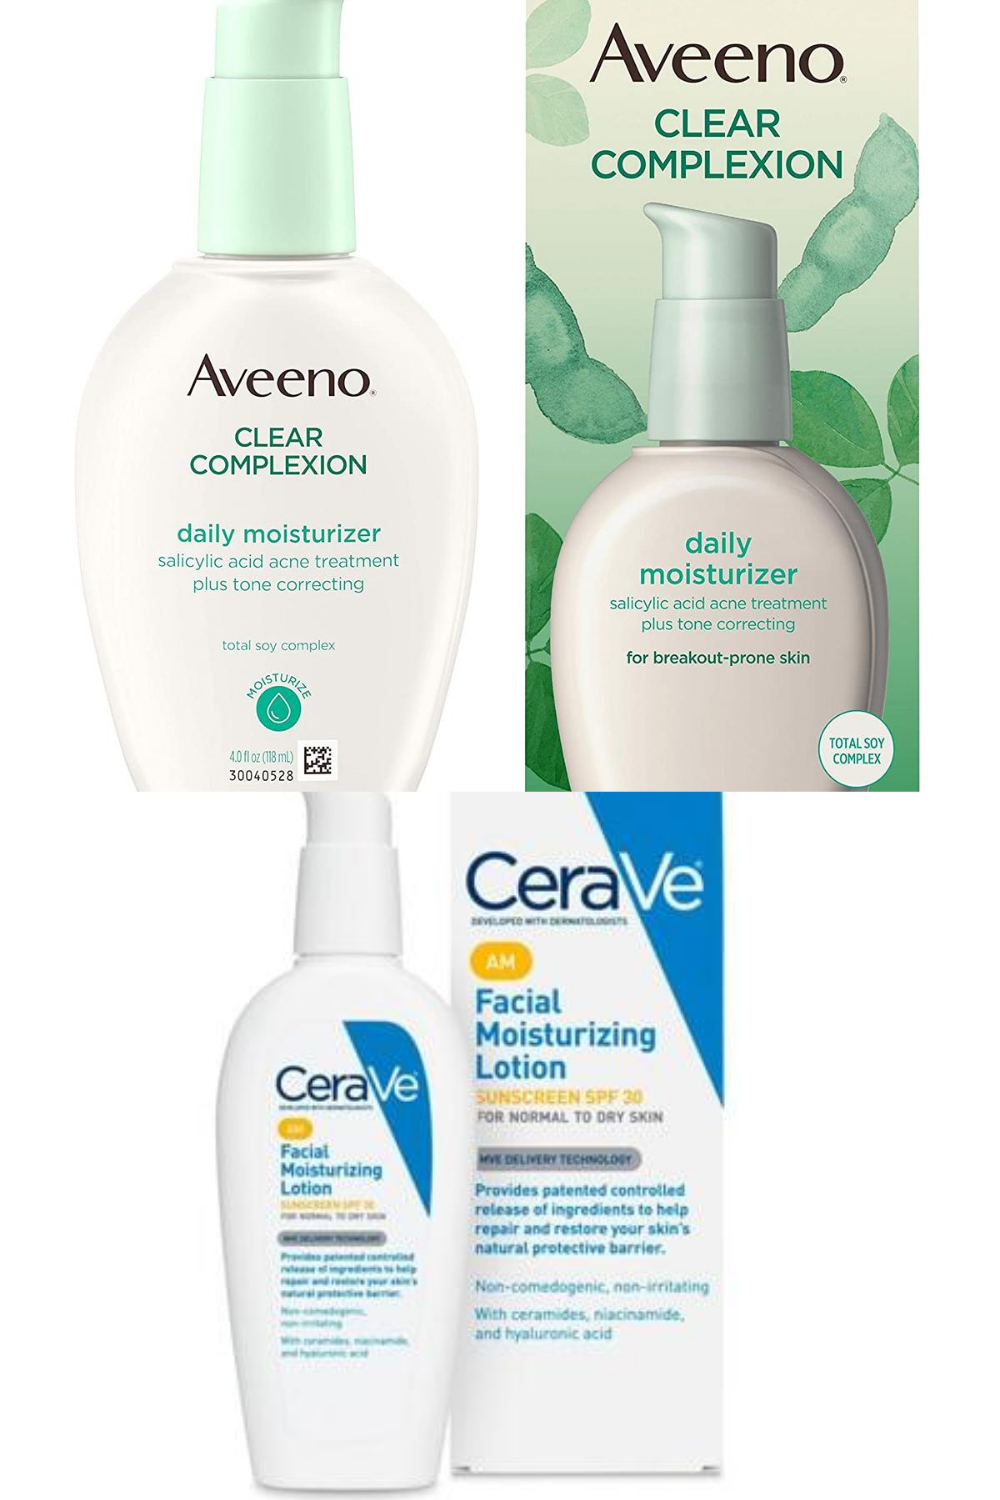 Aveeno Clear Complexion vs. CeraVe AM Facial Moisturizer | The Pros and Cons of Each Product | My Comparison